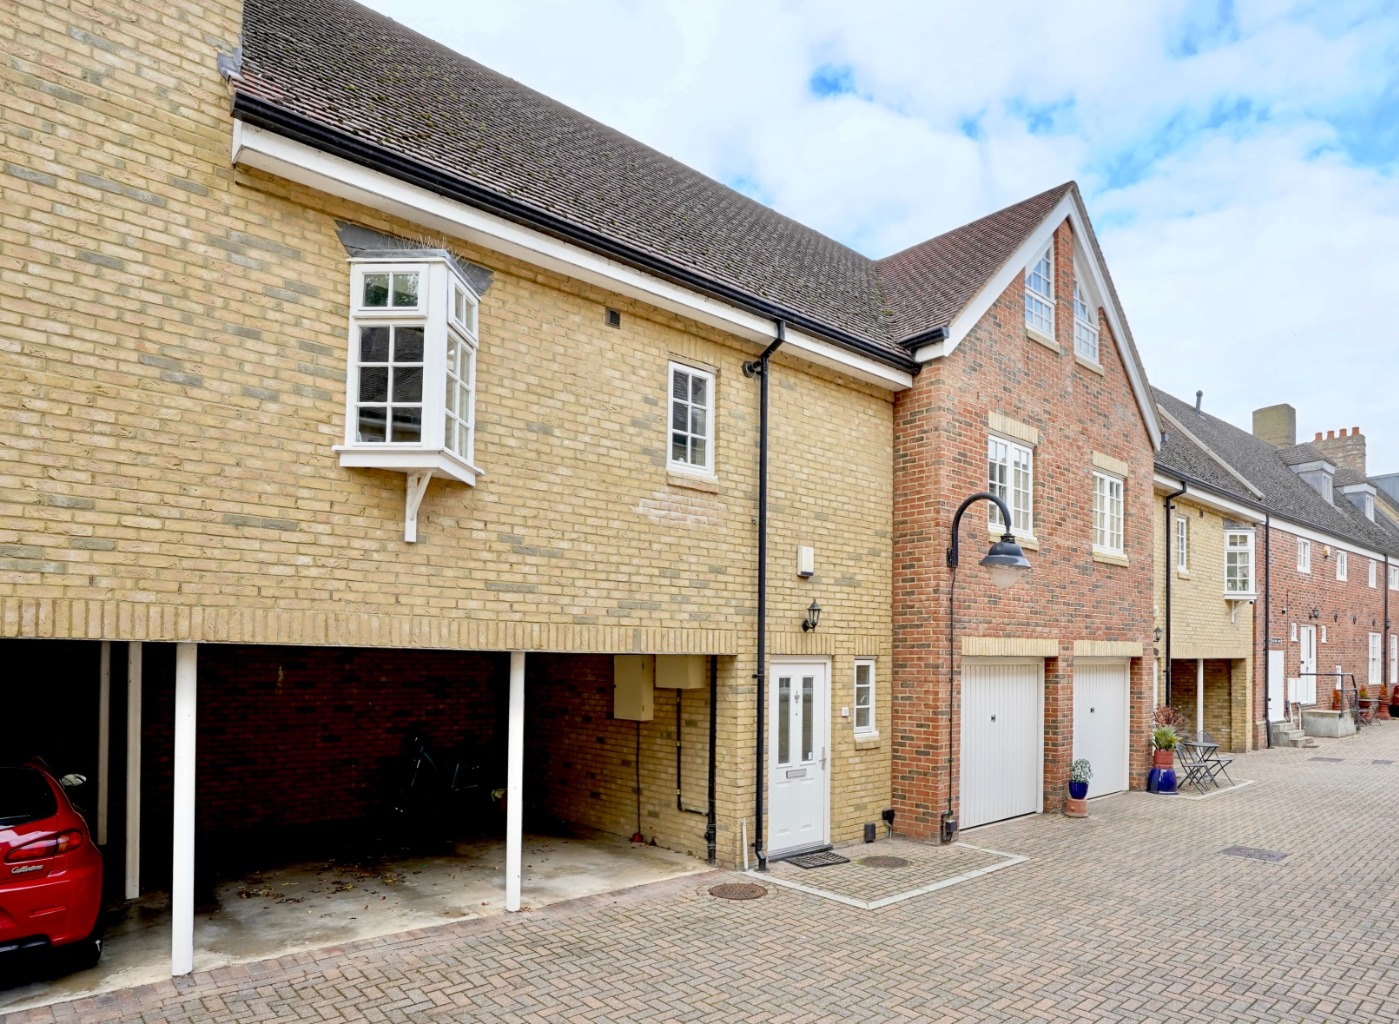 2 bed  for sale in Chandlers Wharf, St. Neots, PE19